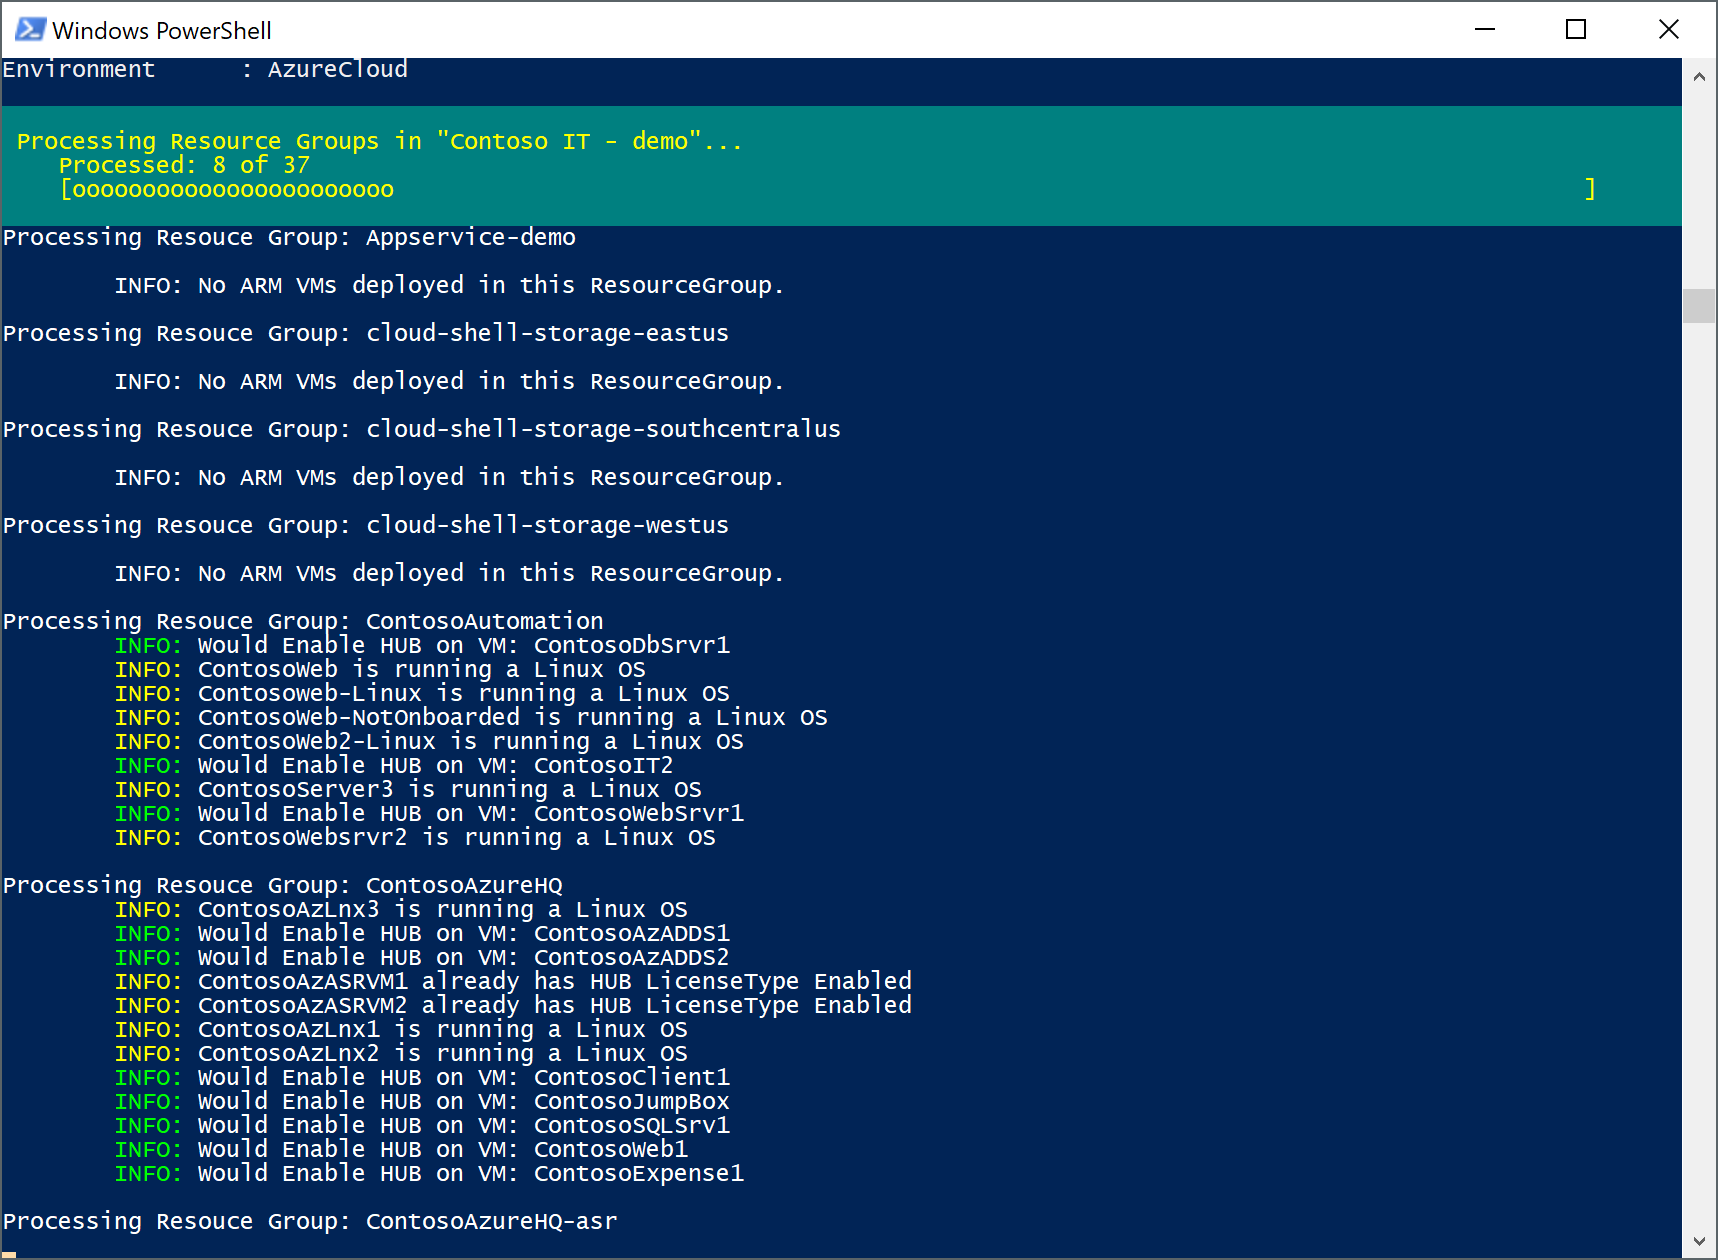 Azure Cost Optimisation Series - Enable Hybrid Use Benefit (HUB) Using PowerShell